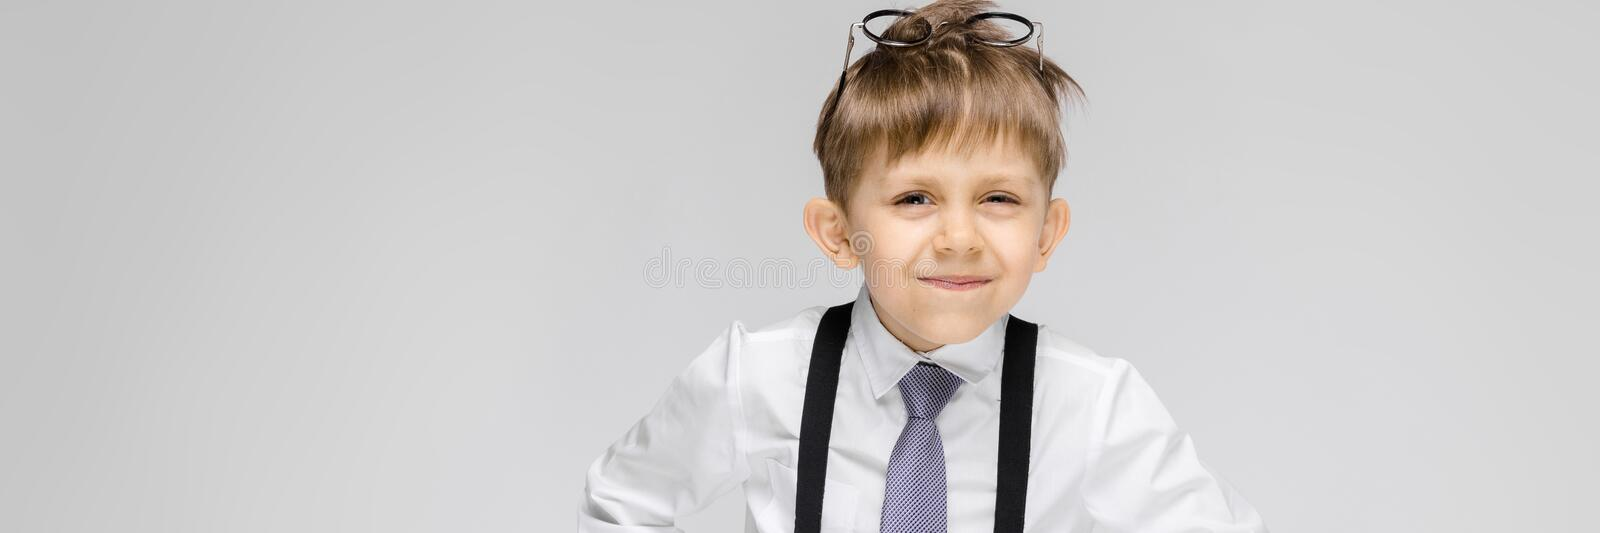 A charming boy in a white shirt, suspenders, a tie and light jeans stands on a gray background. Glasses on the head. Portrait of a boy on a gray background royalty free stock photography